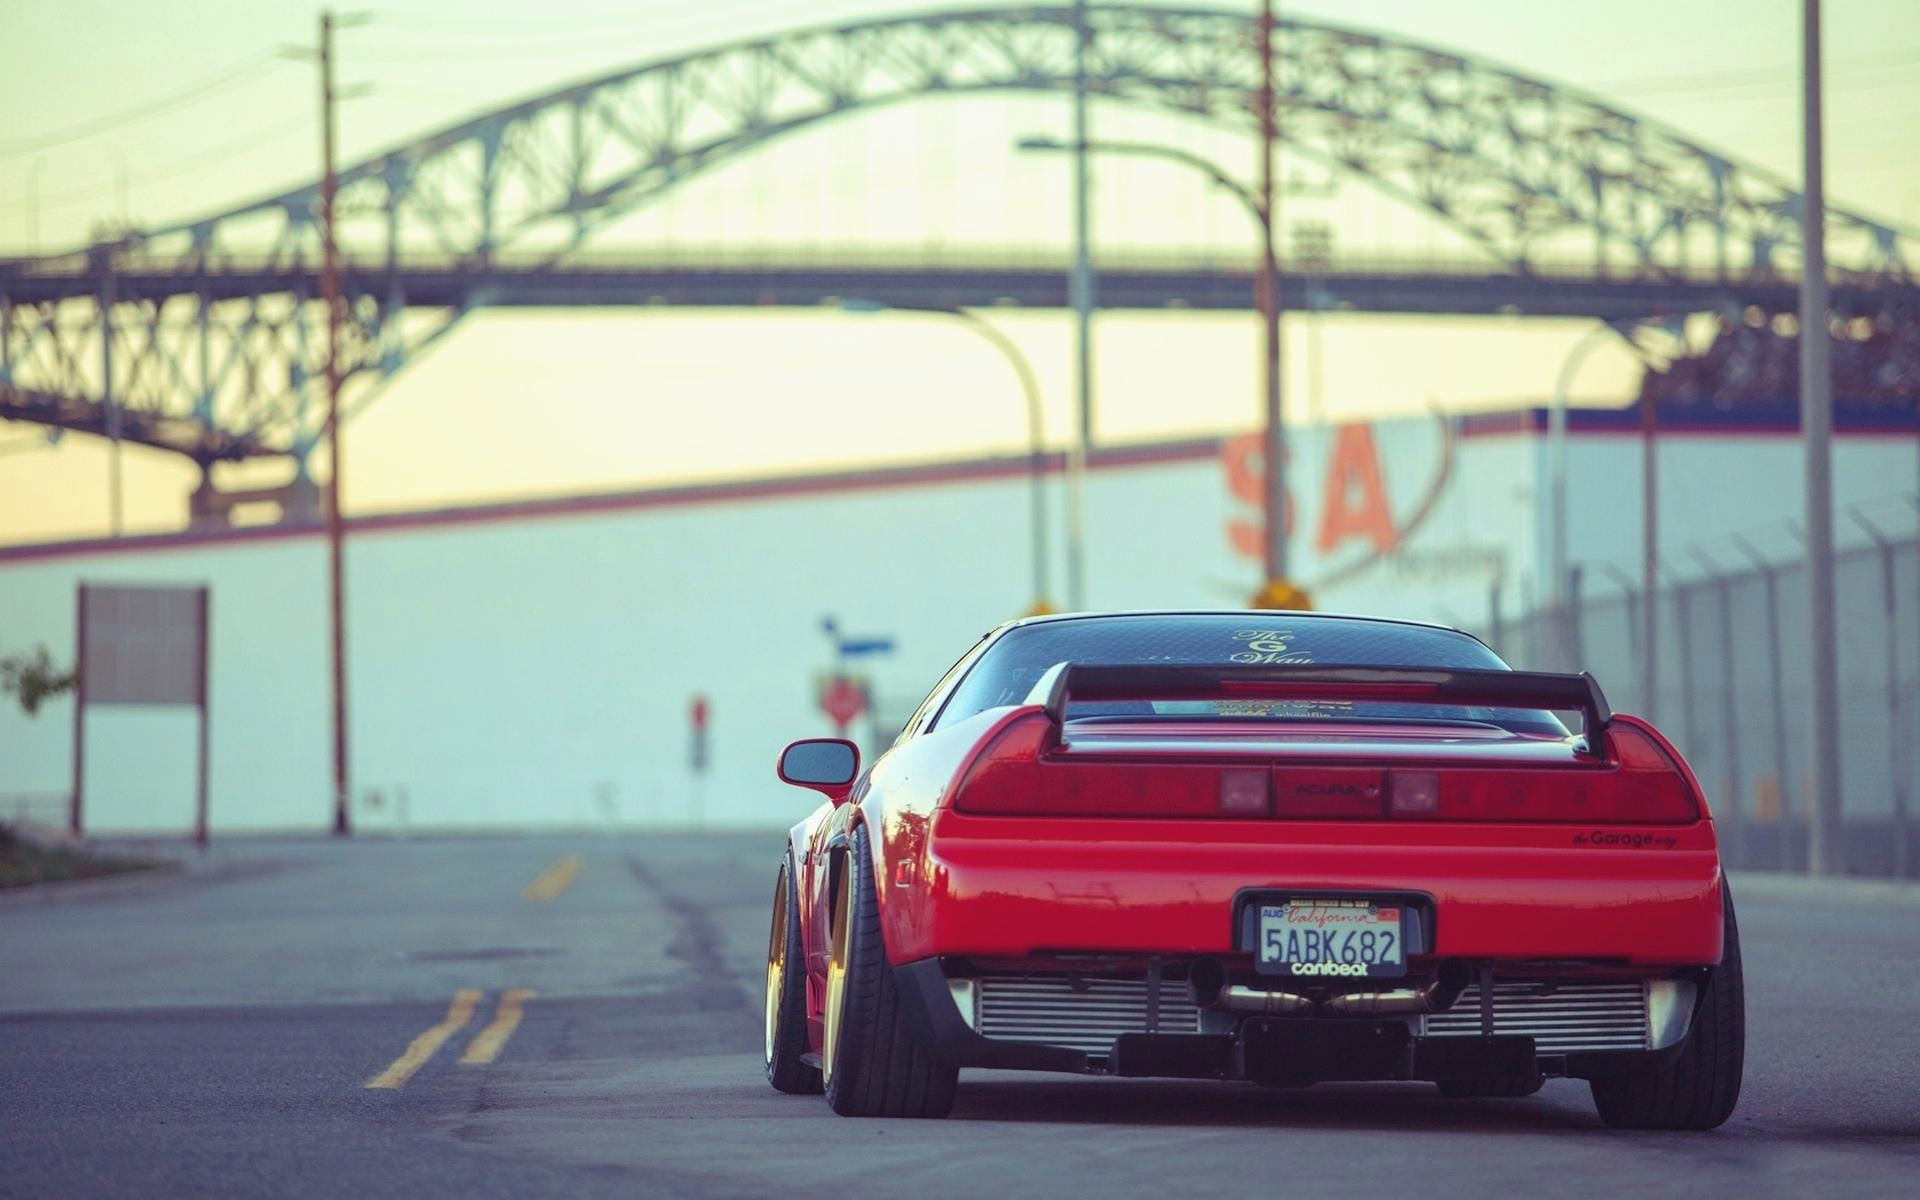 Honda Nsx Wallpapers High Resolution And Quality Downloadhonda Nsx